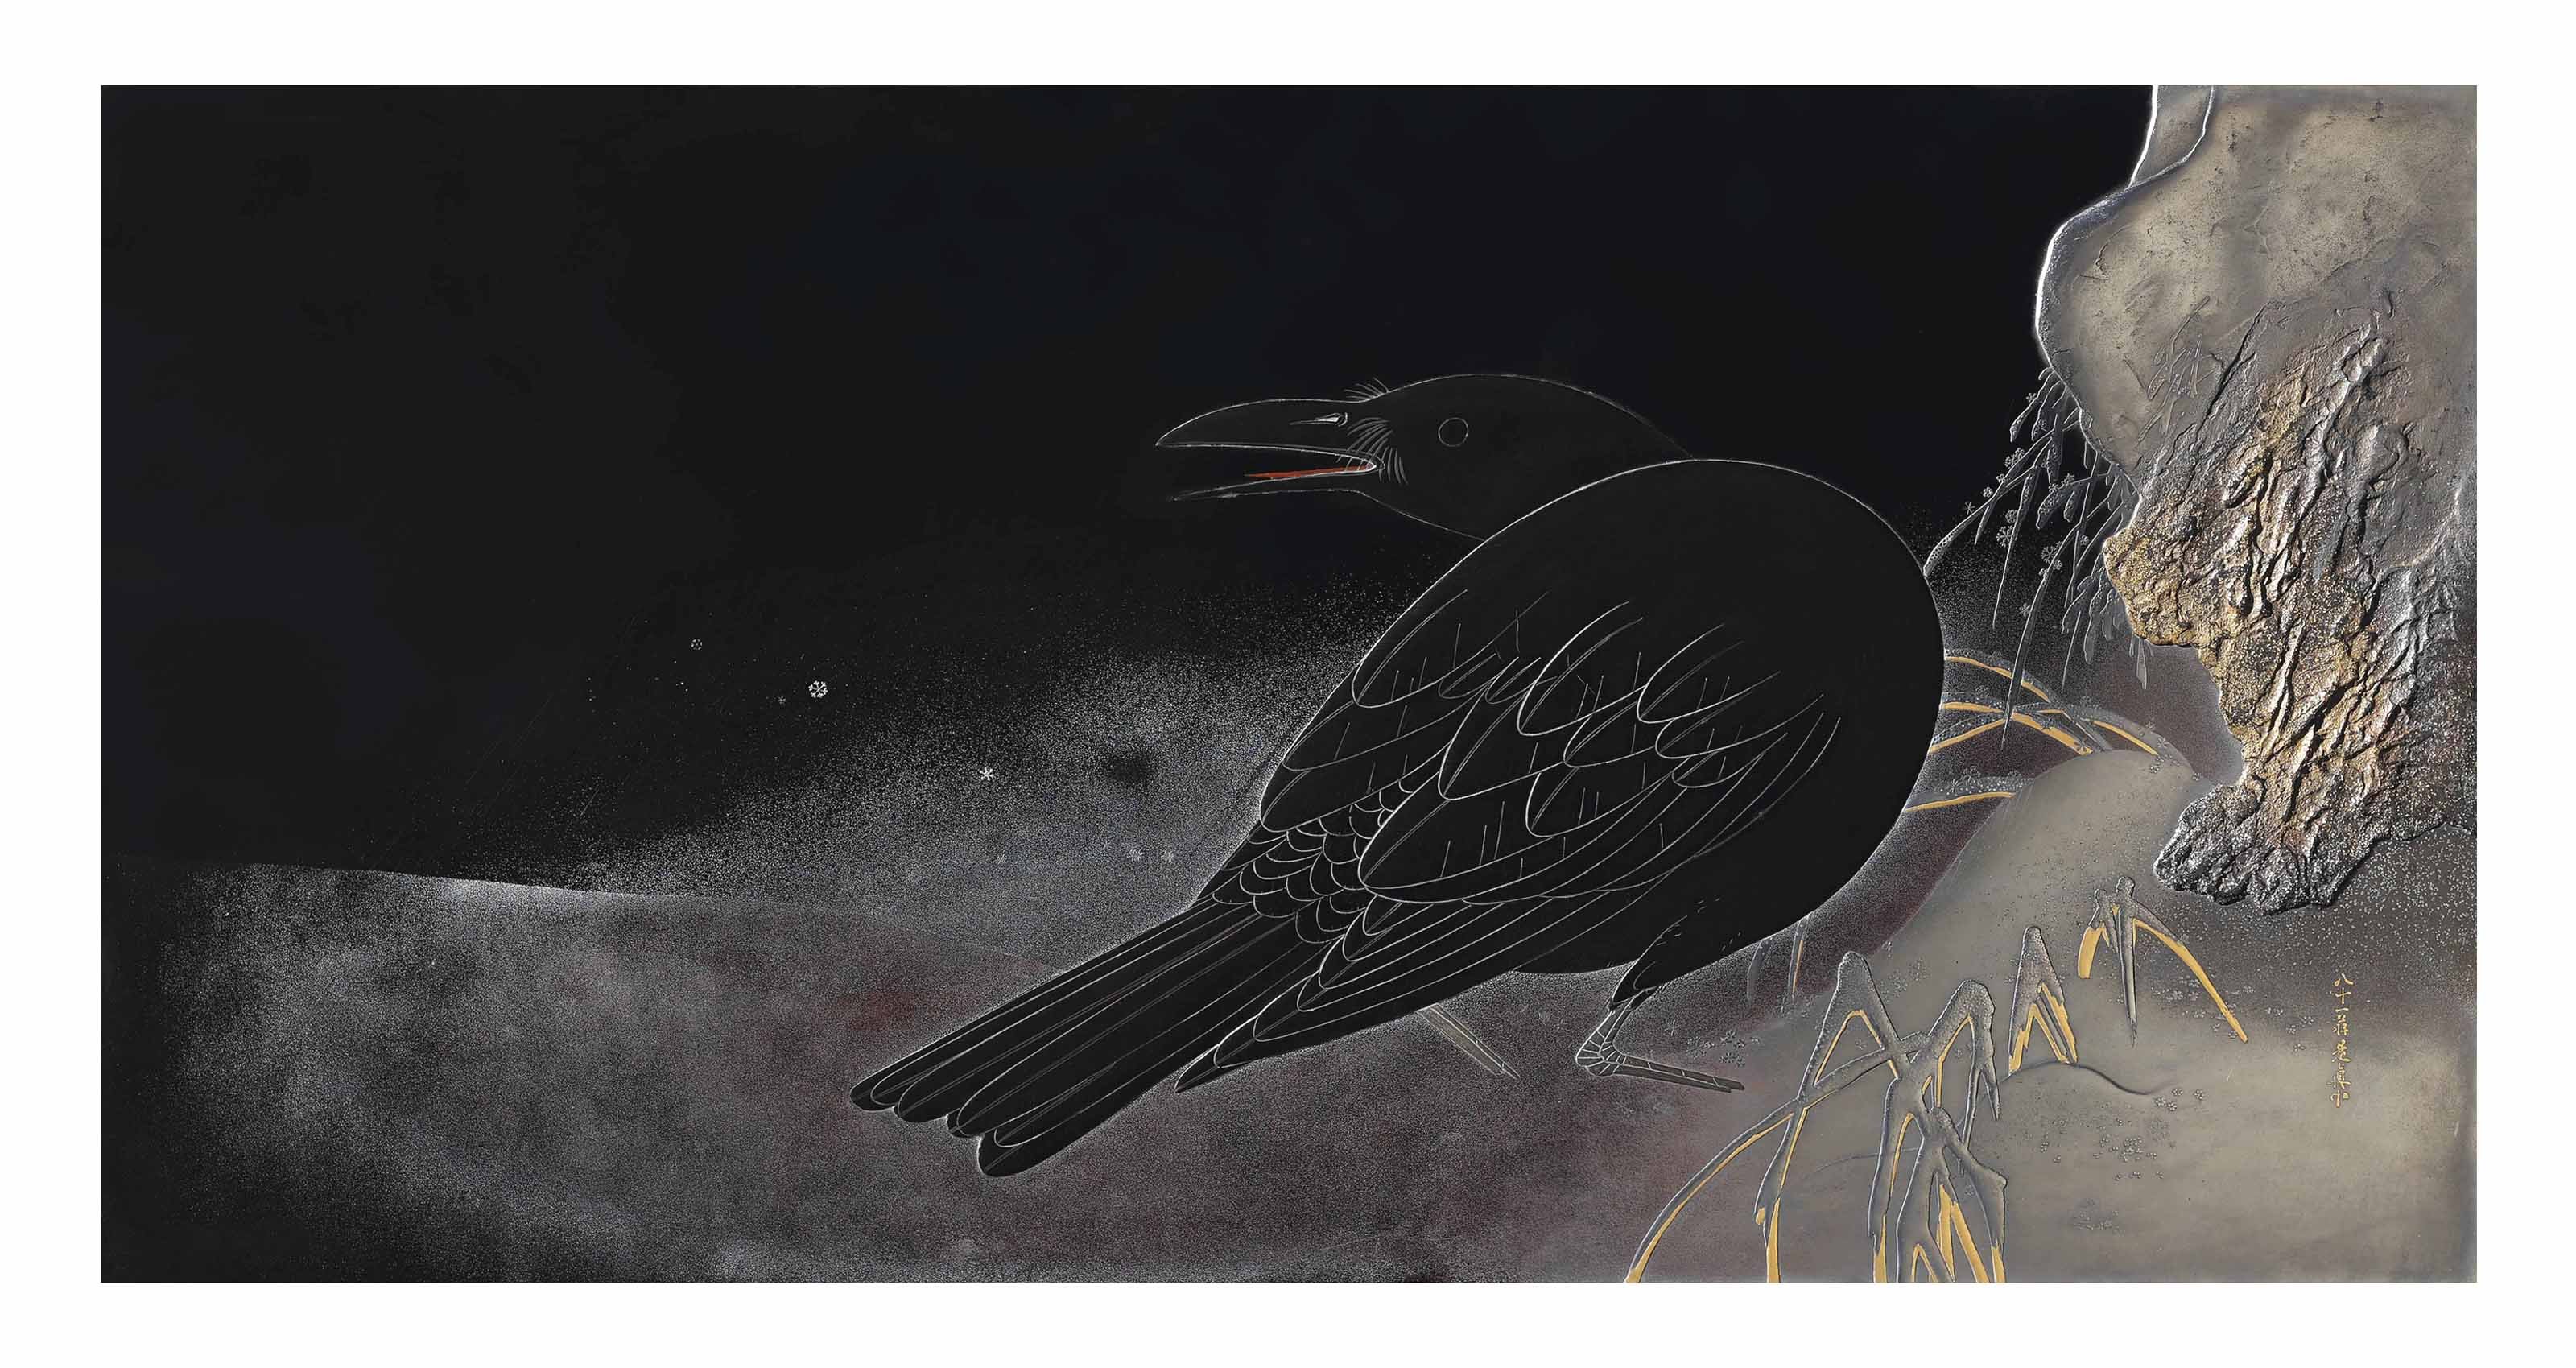 A Magnificent Lacquer Panel Depicting a Crow in the Night